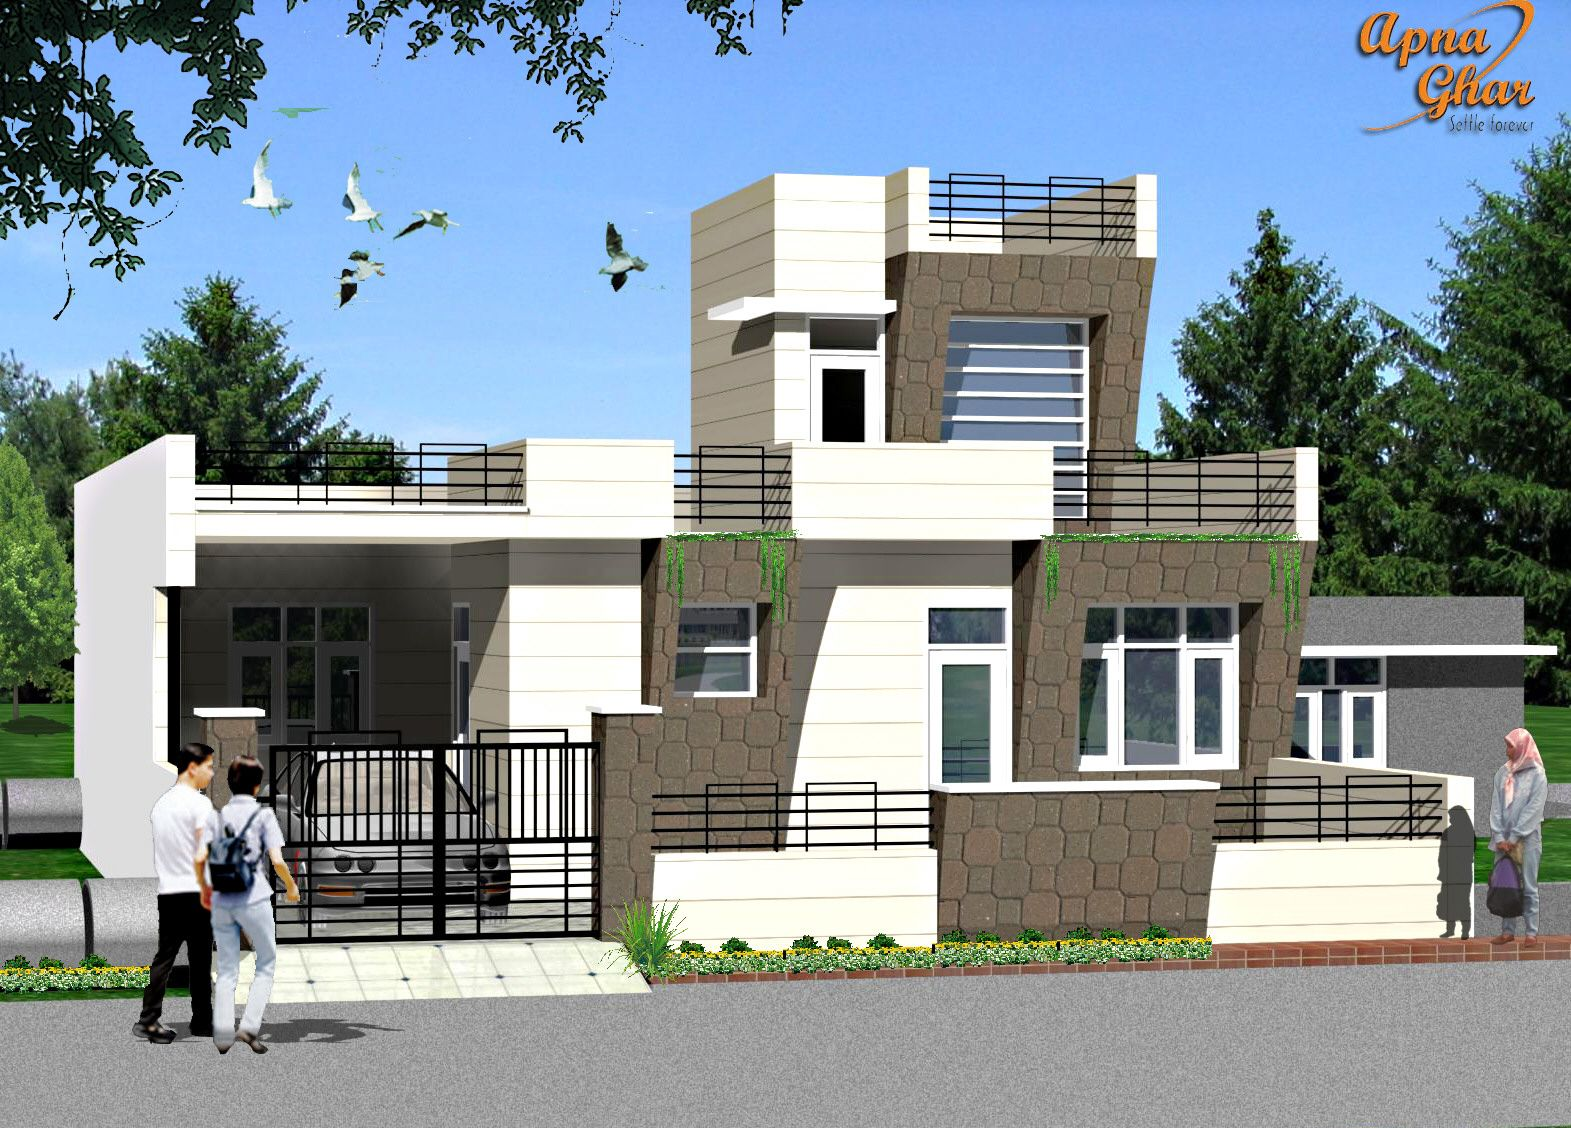 3 bedroom, modern simplex (1 floor) house design. Area: 242m2 (11m ...